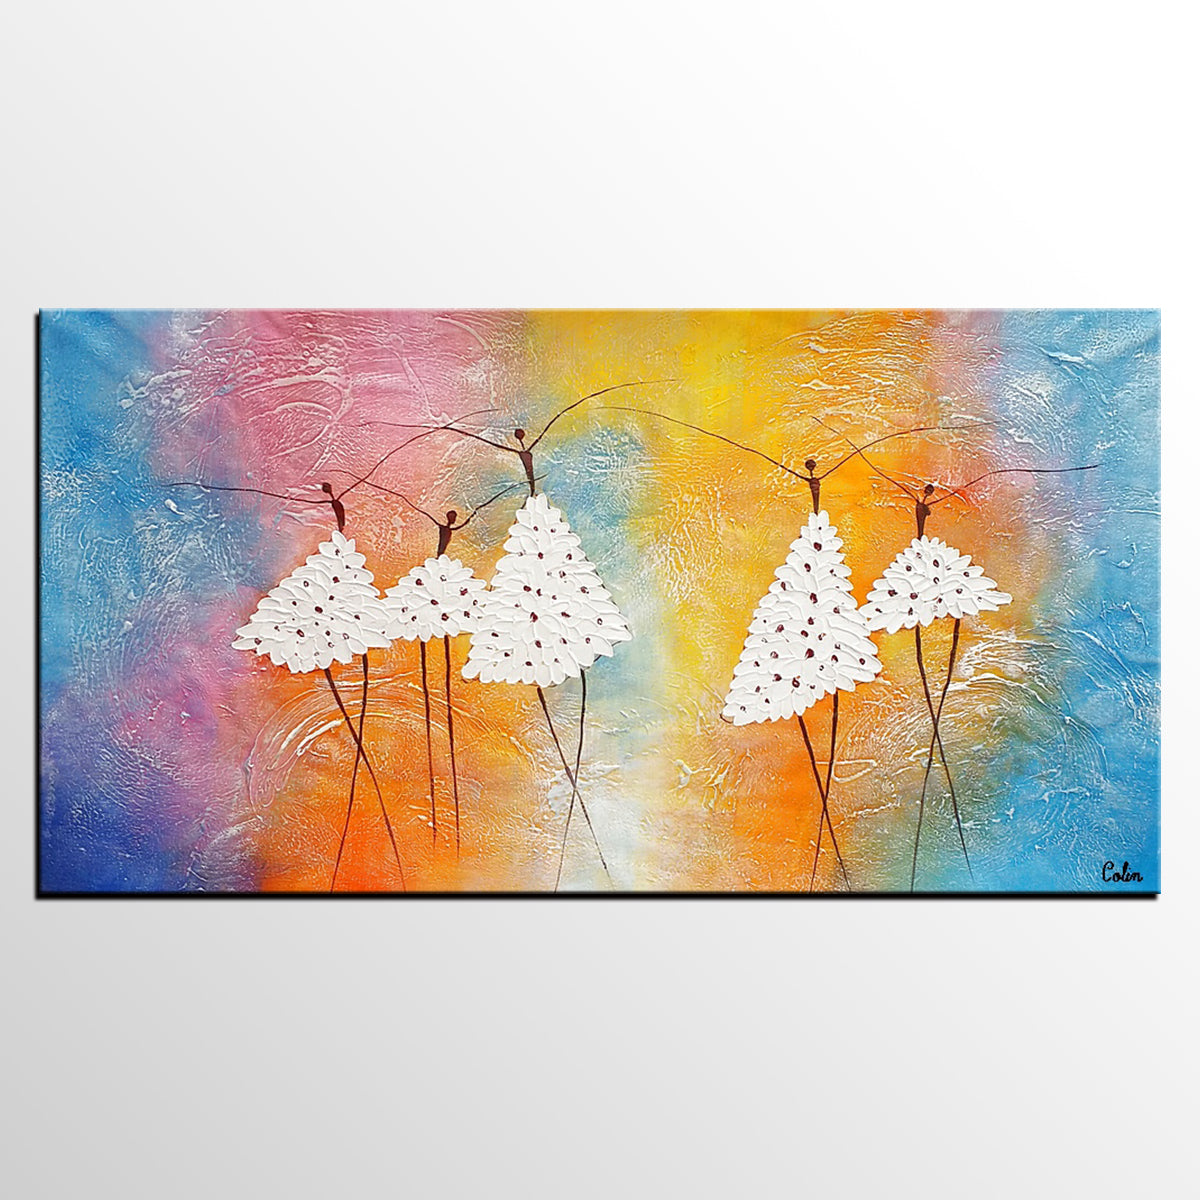 Abstract painting canvas painting ballet dancer painting acrylic art painting bedroom canvas art